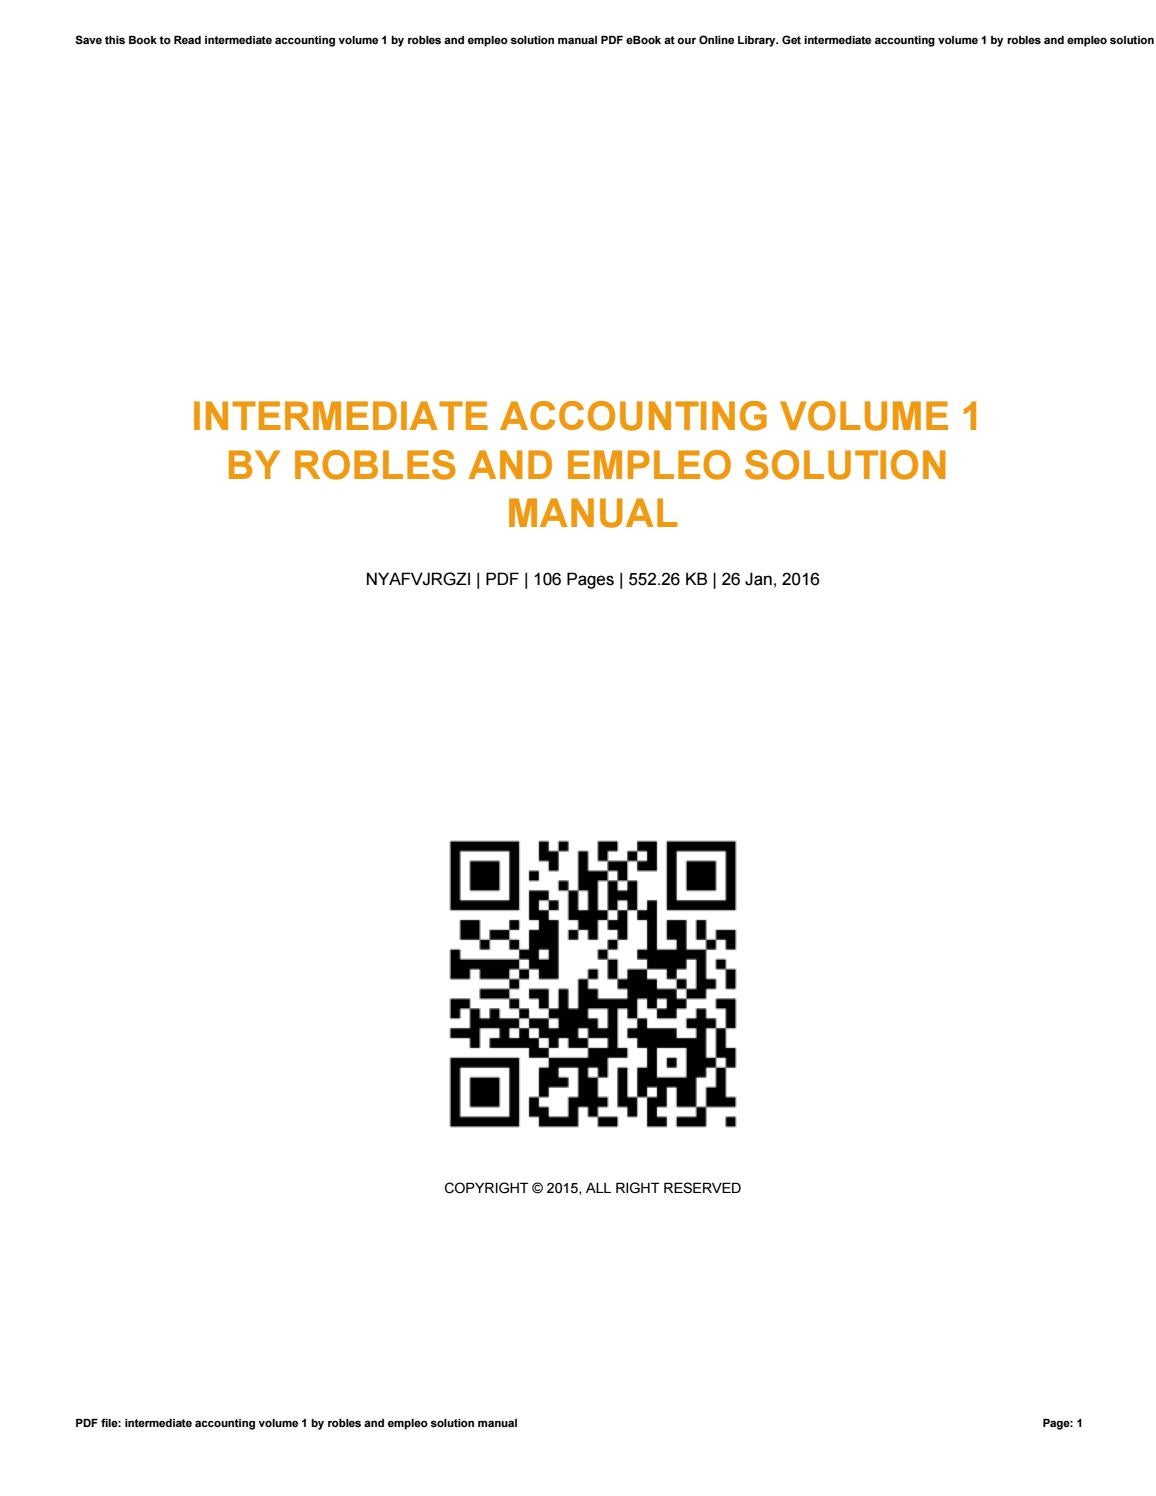 Intermediate accounting volume 1 by robles and empleo solution manual by  JonathanGrissett1526 - issuu